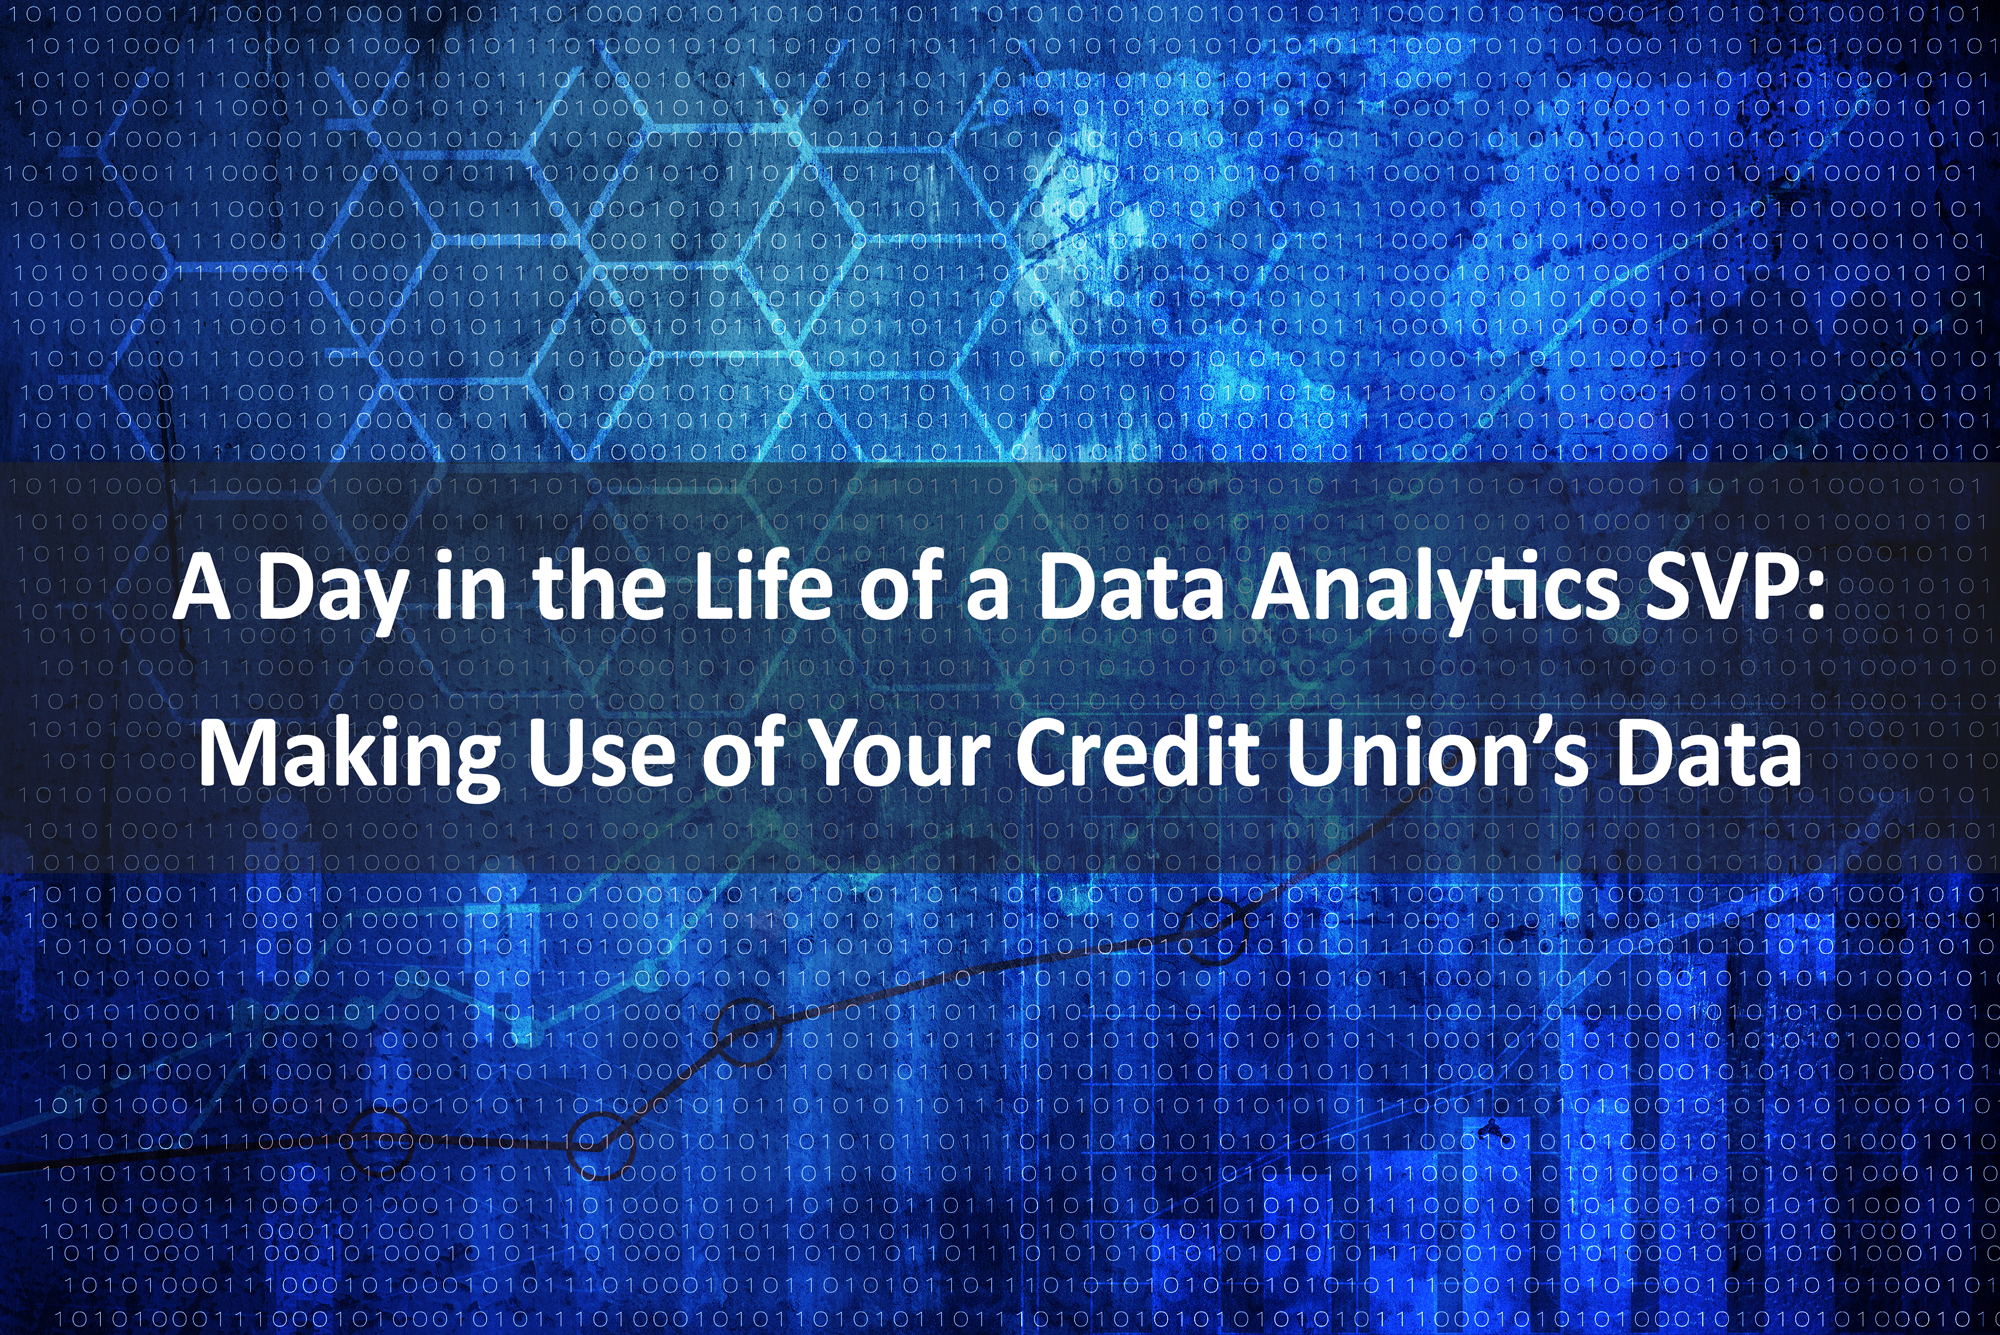 Day-in-the-Life-of-a-Data-Analytics-SVPMaking-Use-of-Your-Credit-Union-Data.png